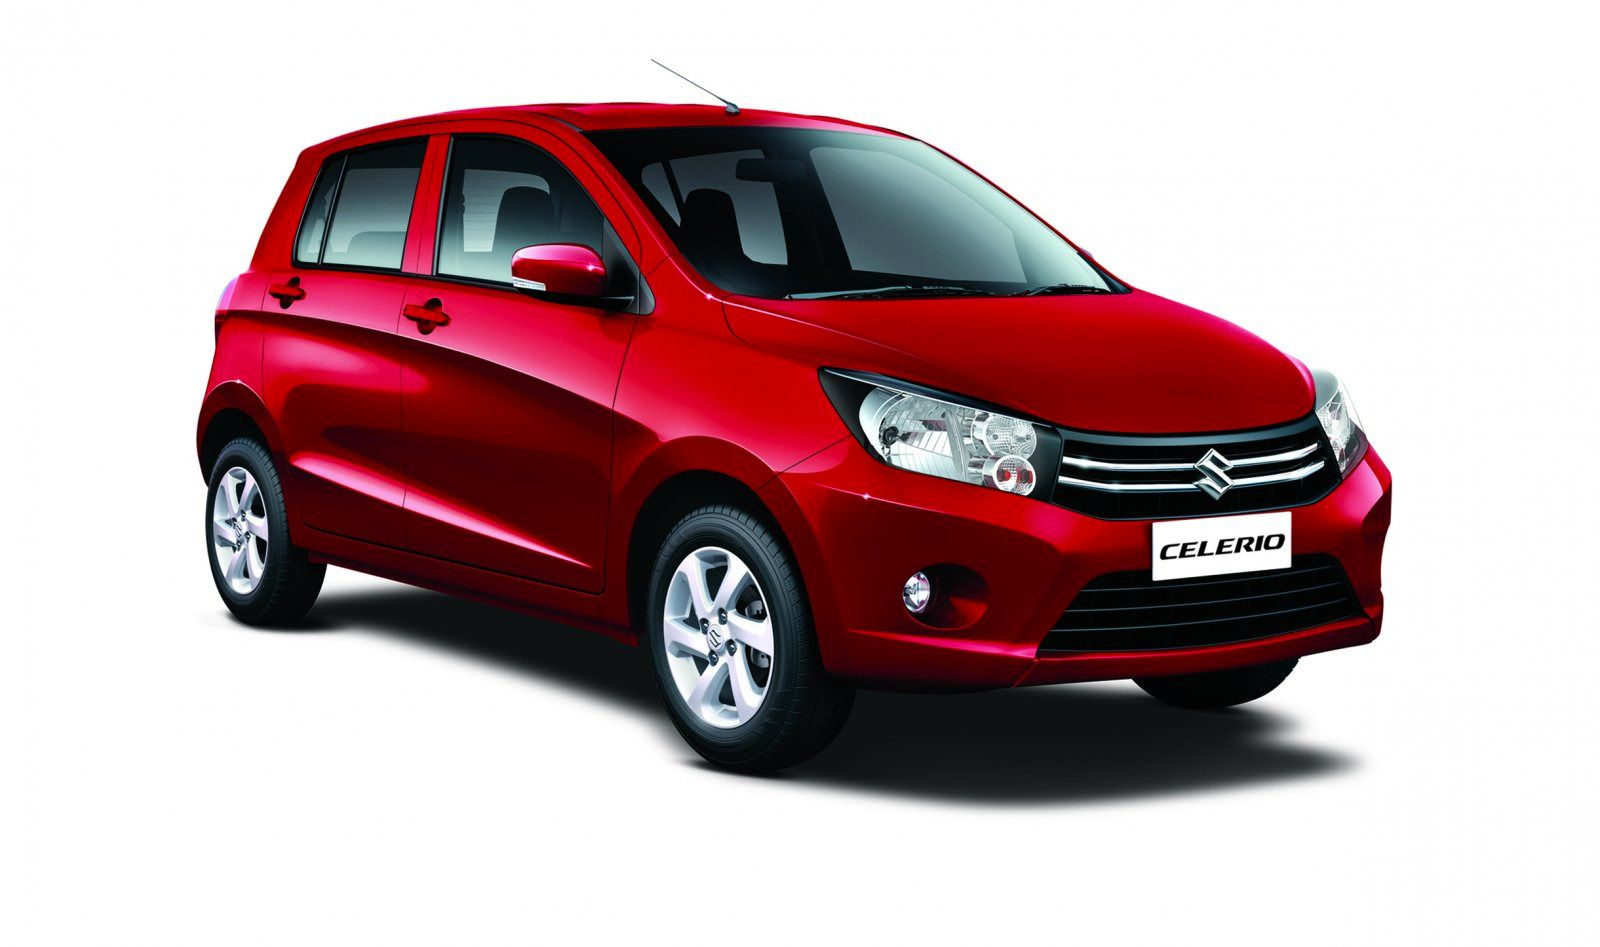 10 top selling cars in 2015 in india 2015 year has seen many